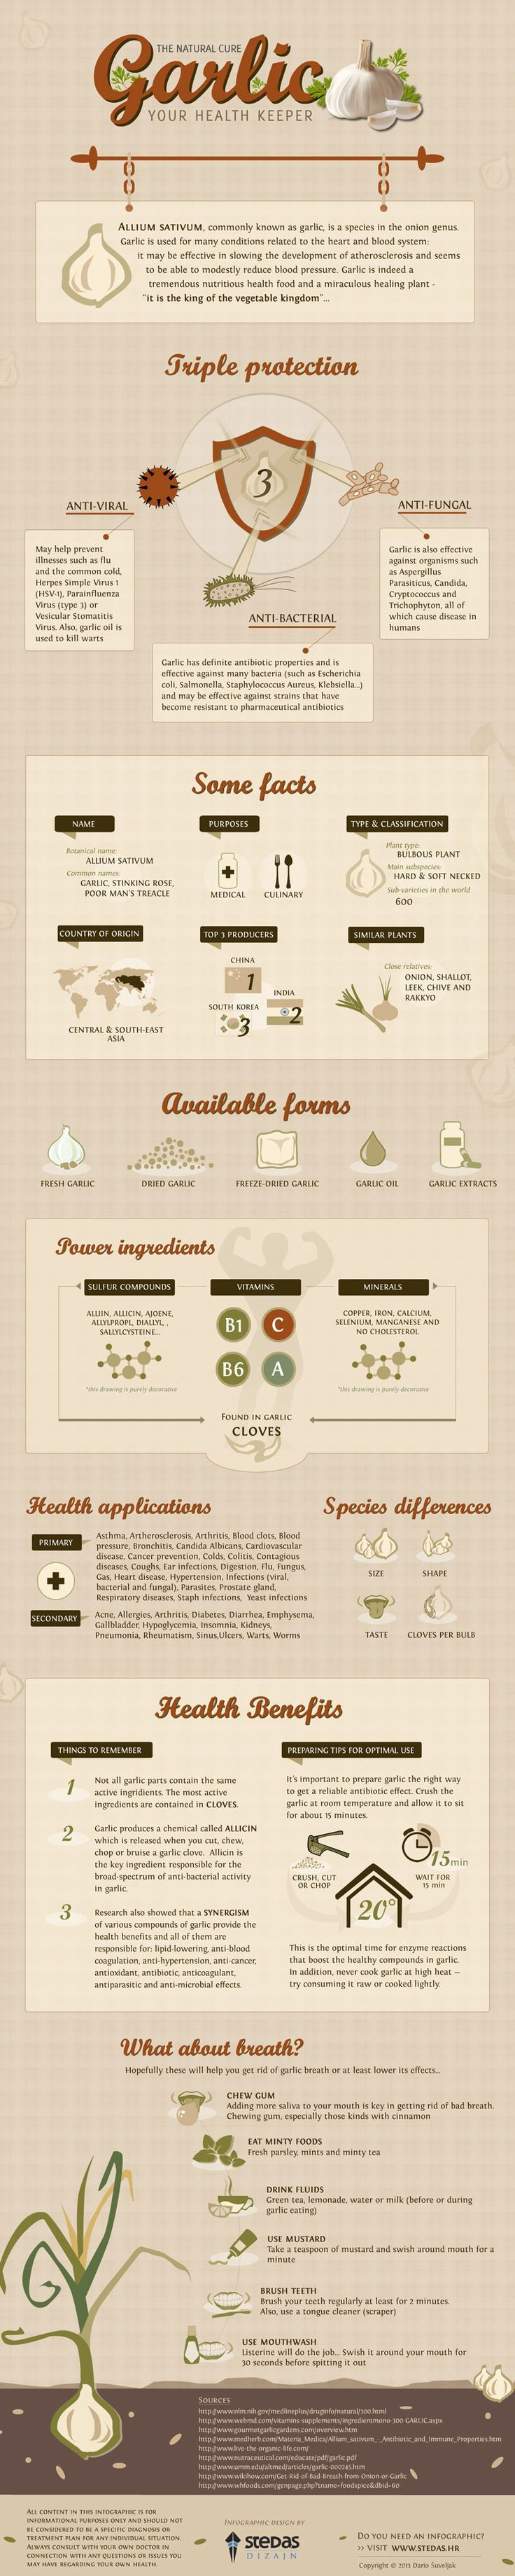 This infographic reveals some surprising facts about garlic you never knew #health http://www.zhounutrition.com